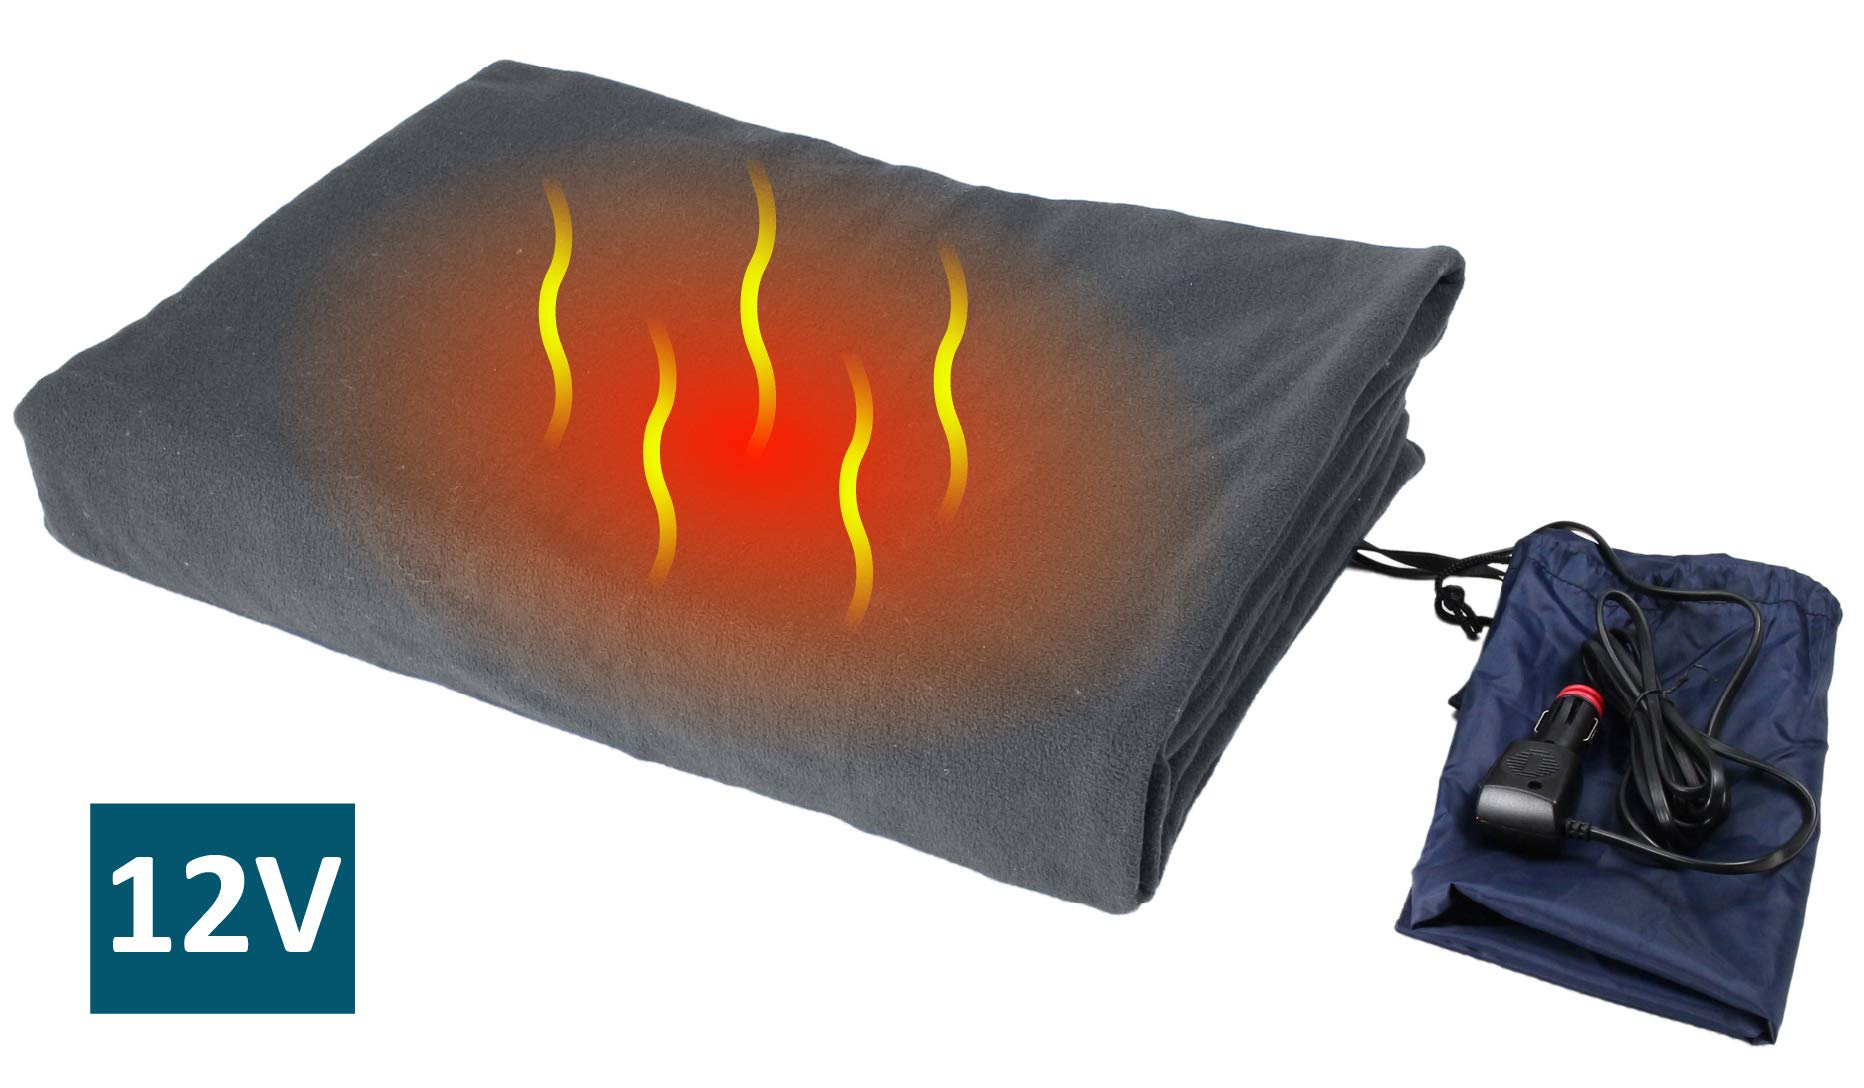 ObboMed SH-4210G Ultra-Soft Deluxe Electric 12V, 60W Luxurious Comfy Polar Fleece Heated Travel Car Blanket, with Premium Cigarette Lighter Plug for Automobile, Vehicle, Gray, Size 61'' x 41.3'' by ObboMed